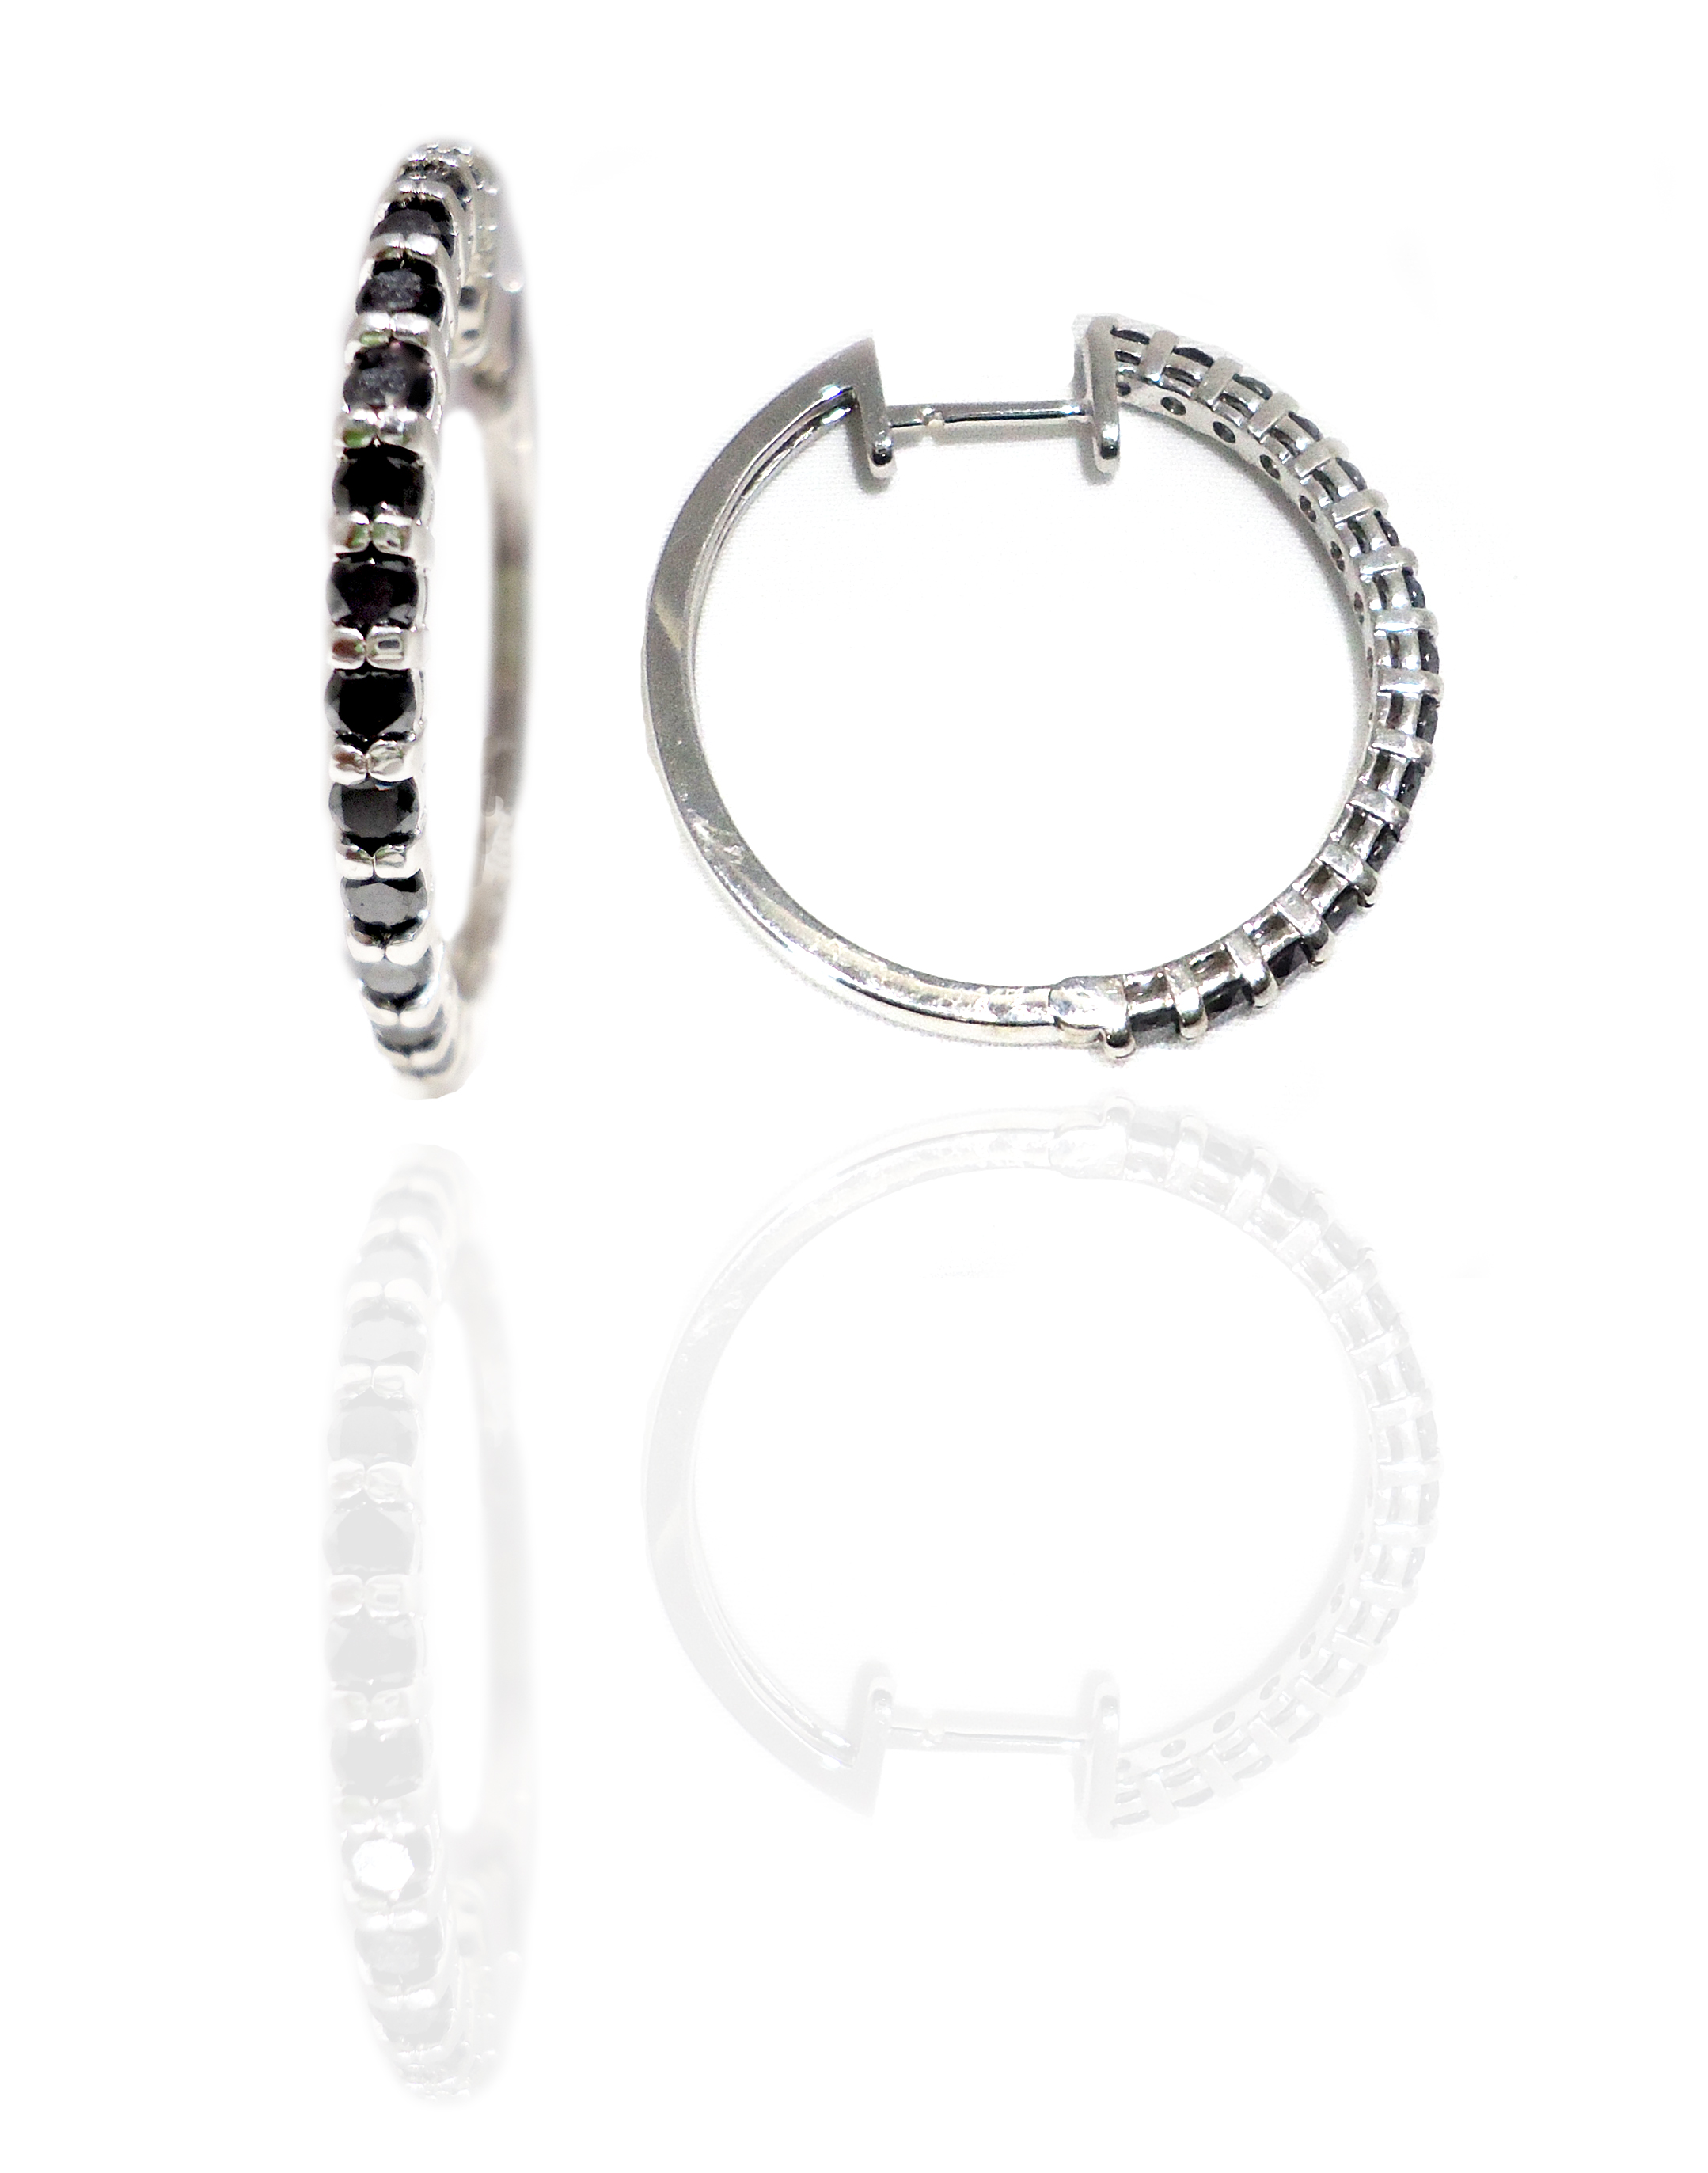 Black diamond hoop earrings!